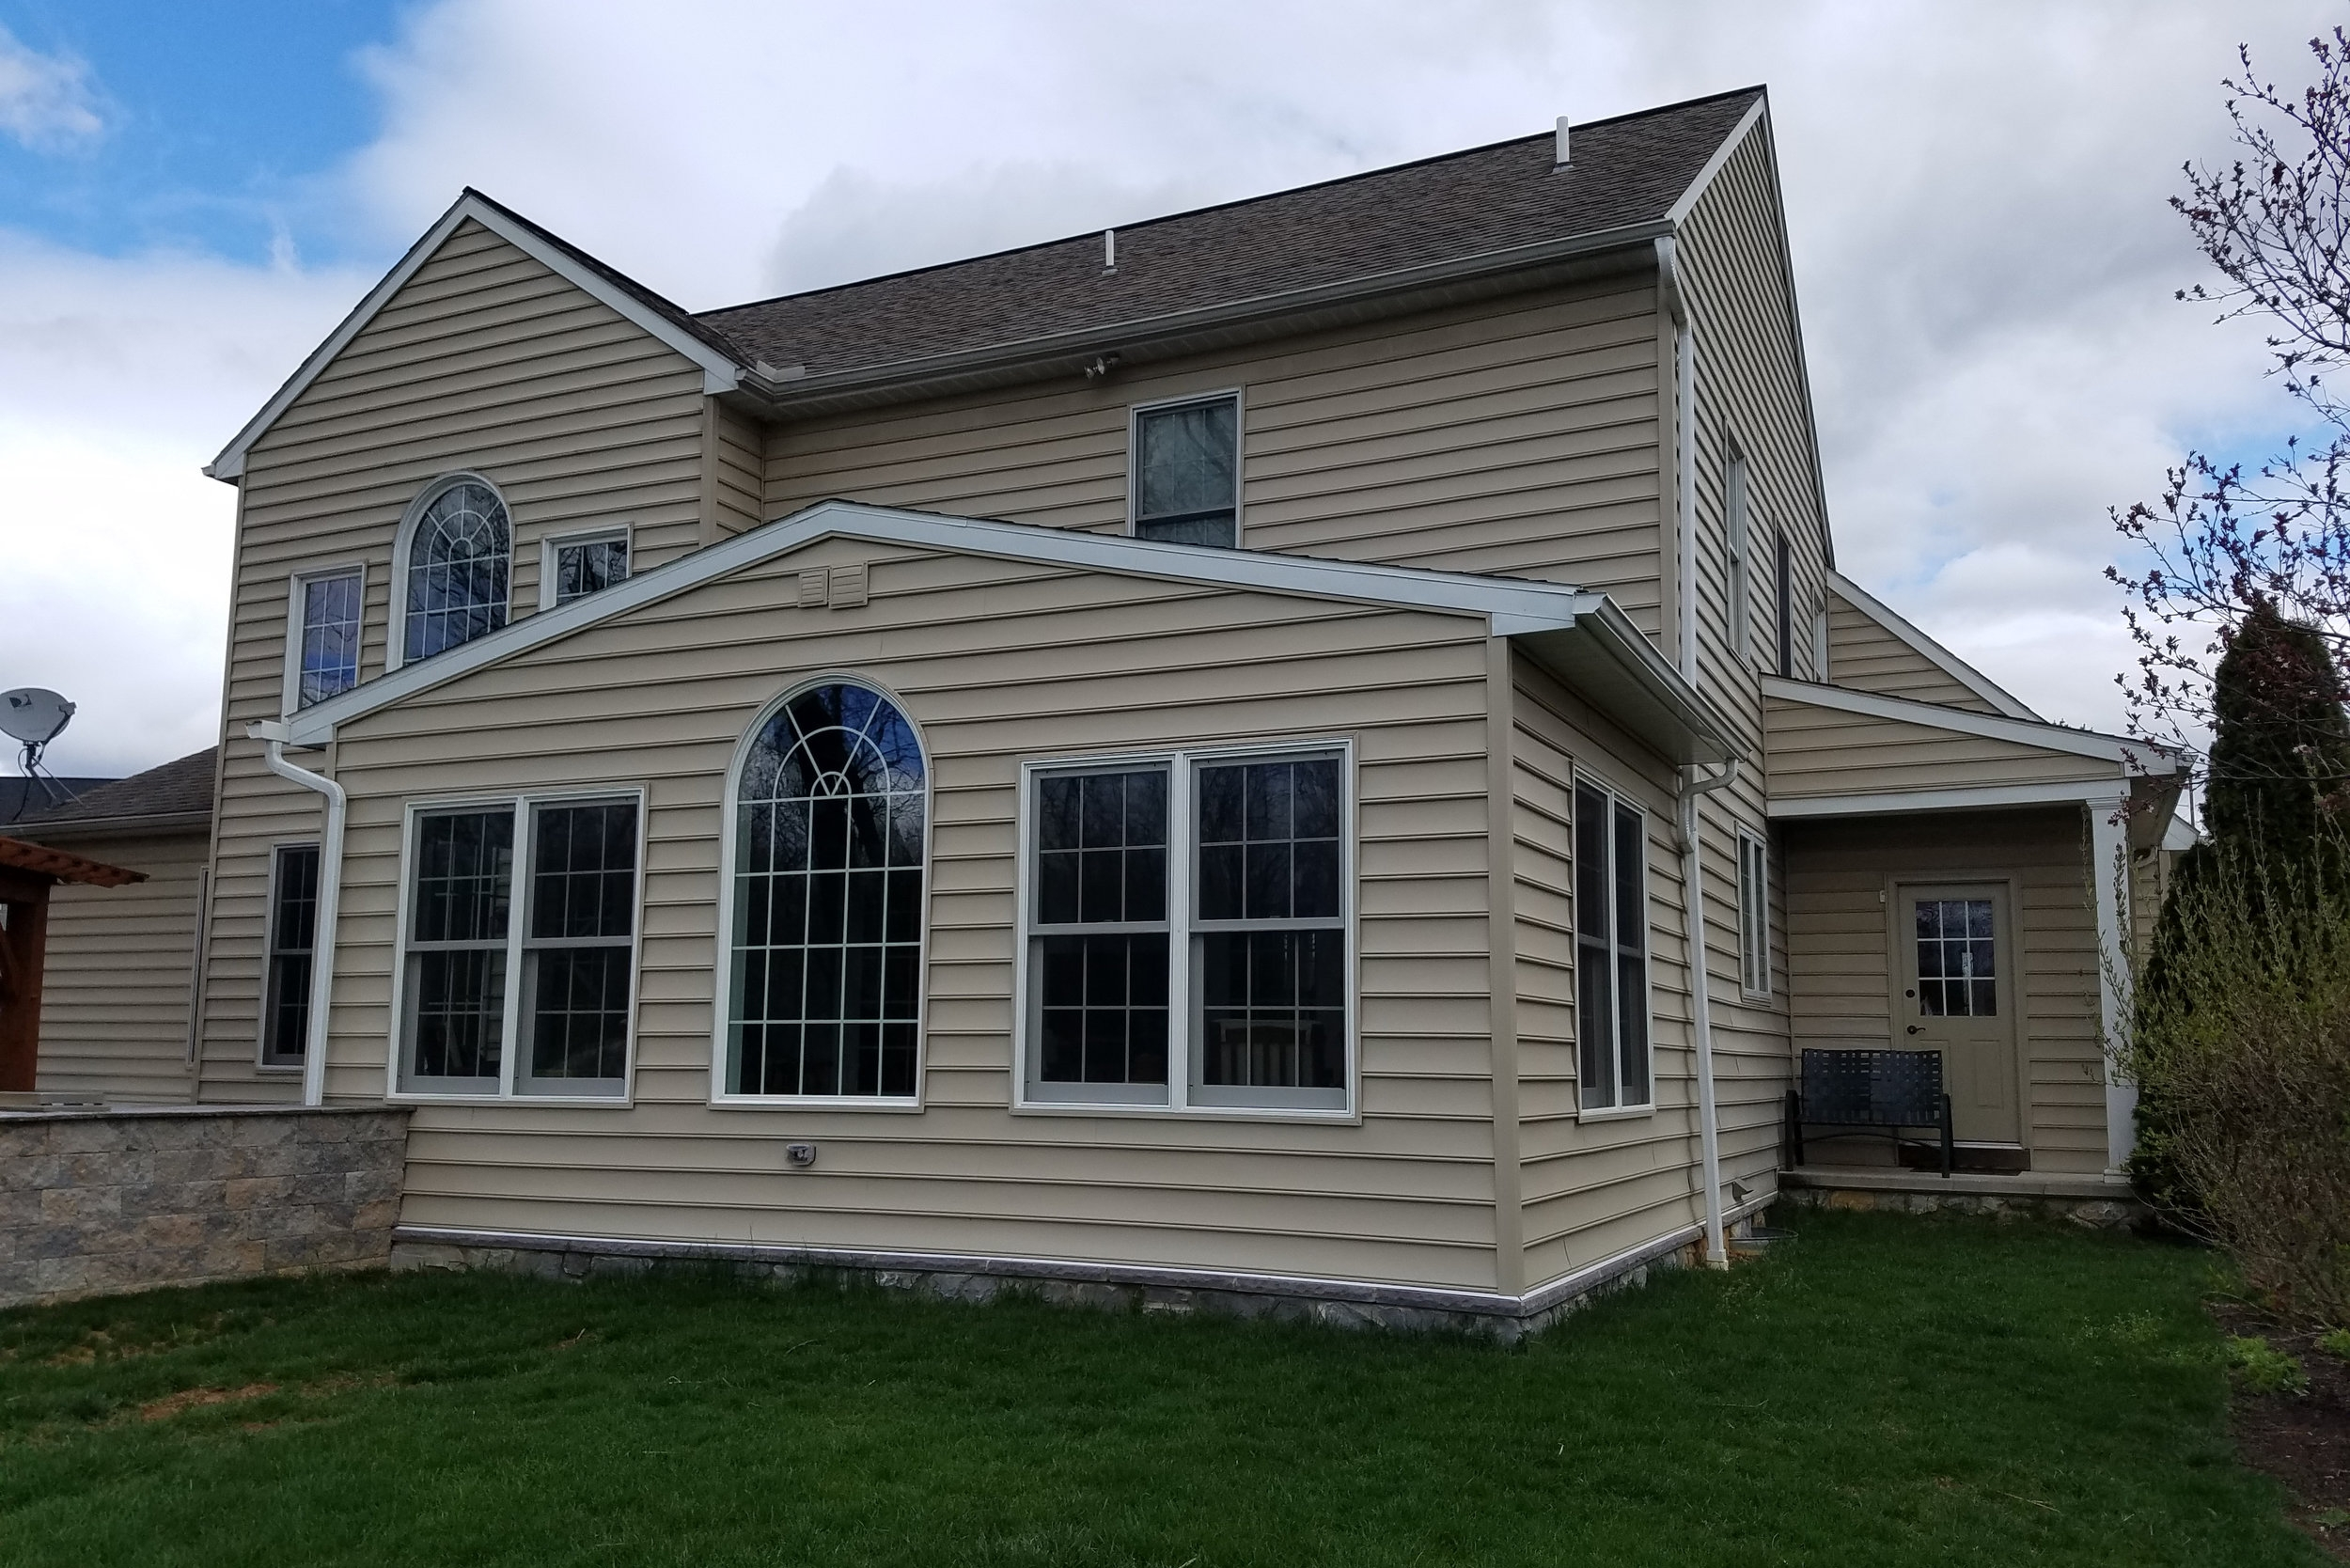 Learn More About Exterior Remodeling - Click Here